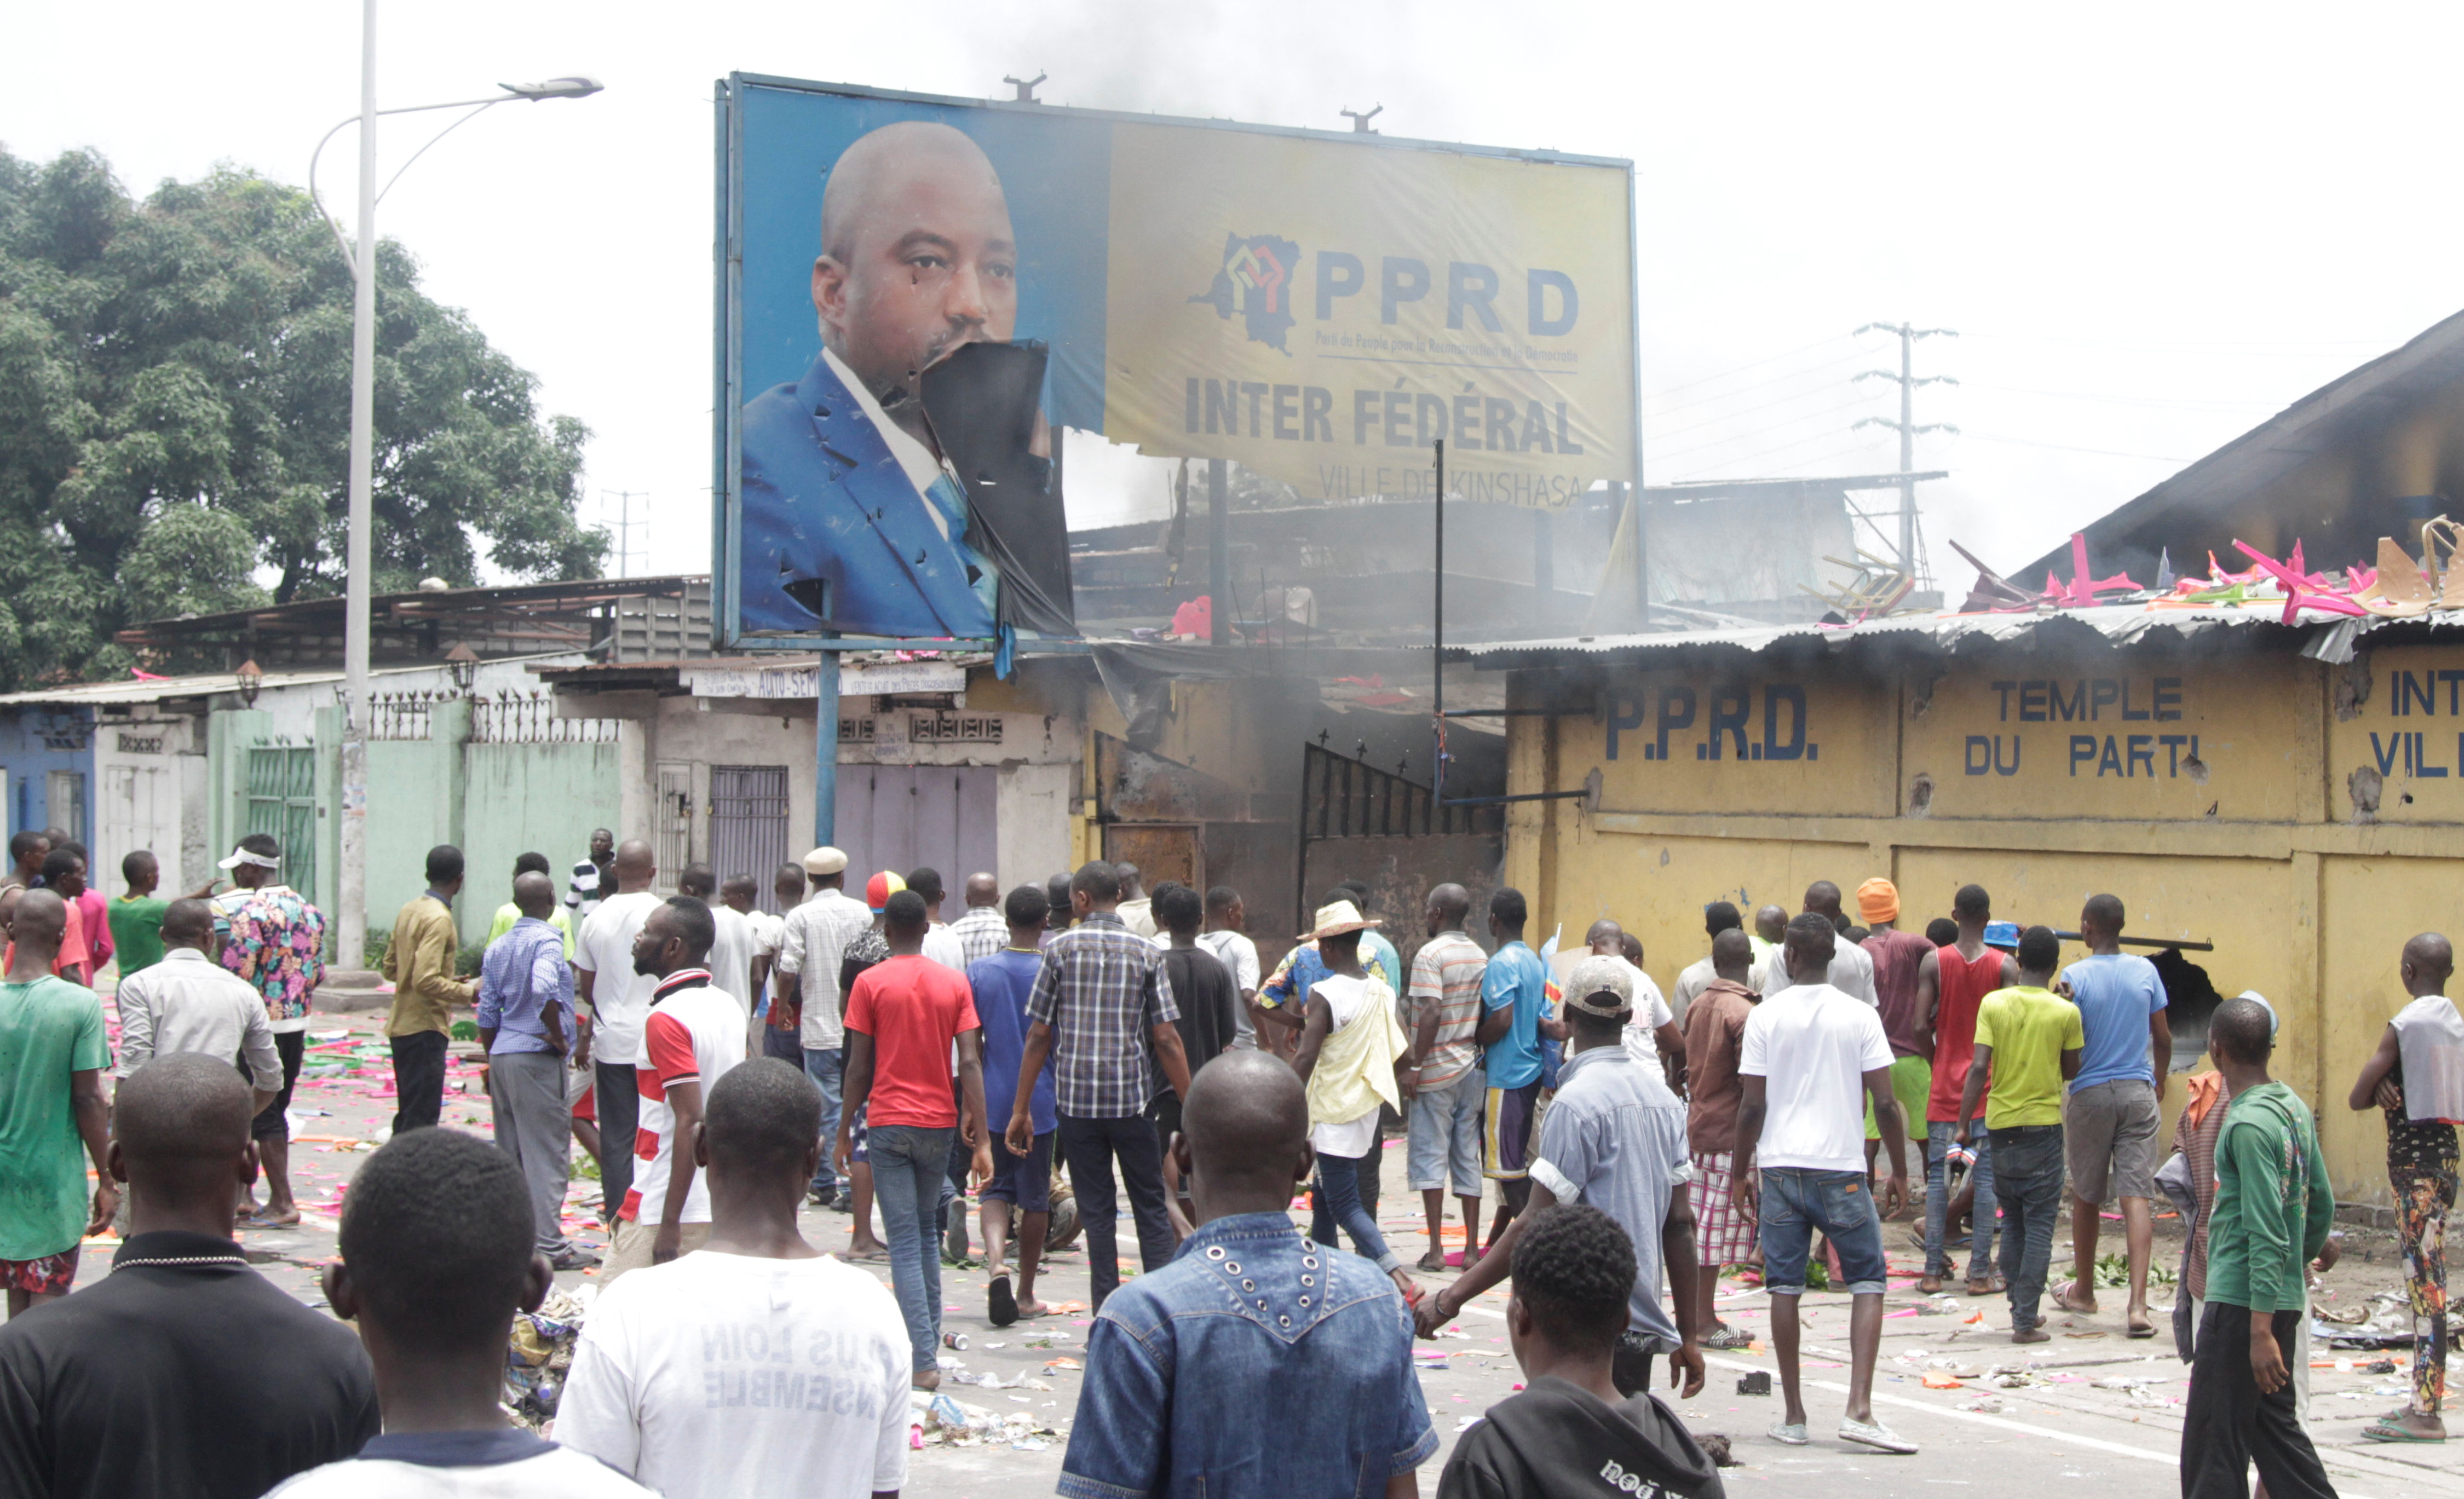 Congolese opposition supporters chant slogans as they destroy the billboard of President Joseph Kabila during a march to press the President to step down in the Democratic Republic of Congo's capital Kinshasa, September 19, 2016. REUTERS/Kenny Katombe/File Photo - RTSQDV6